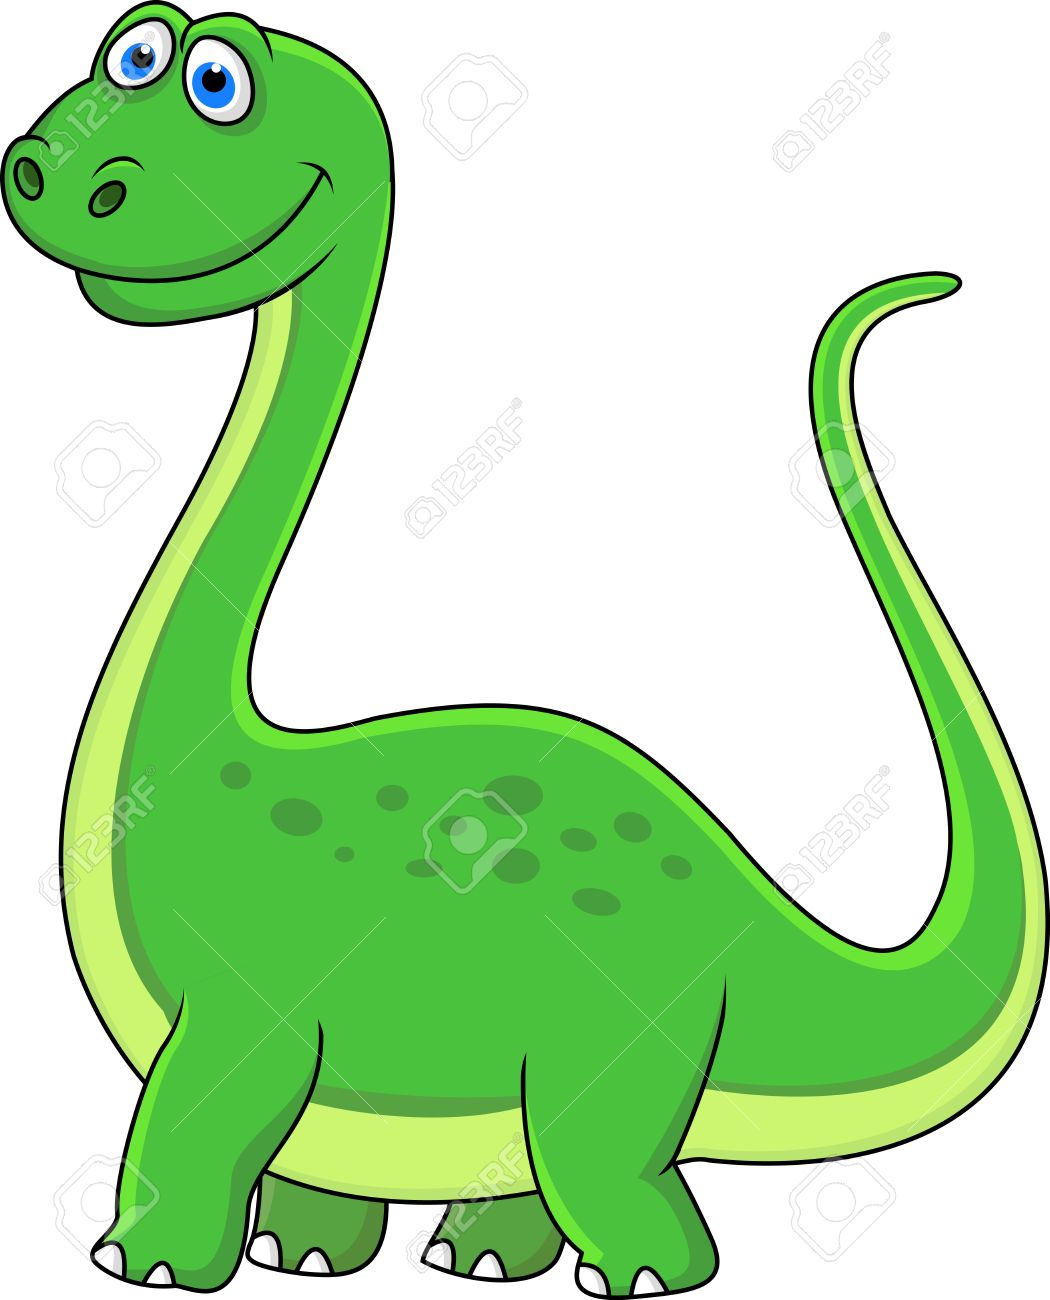 1050x1300 Collection Of Herbivore Dinosaur Clipart High Quality, Free